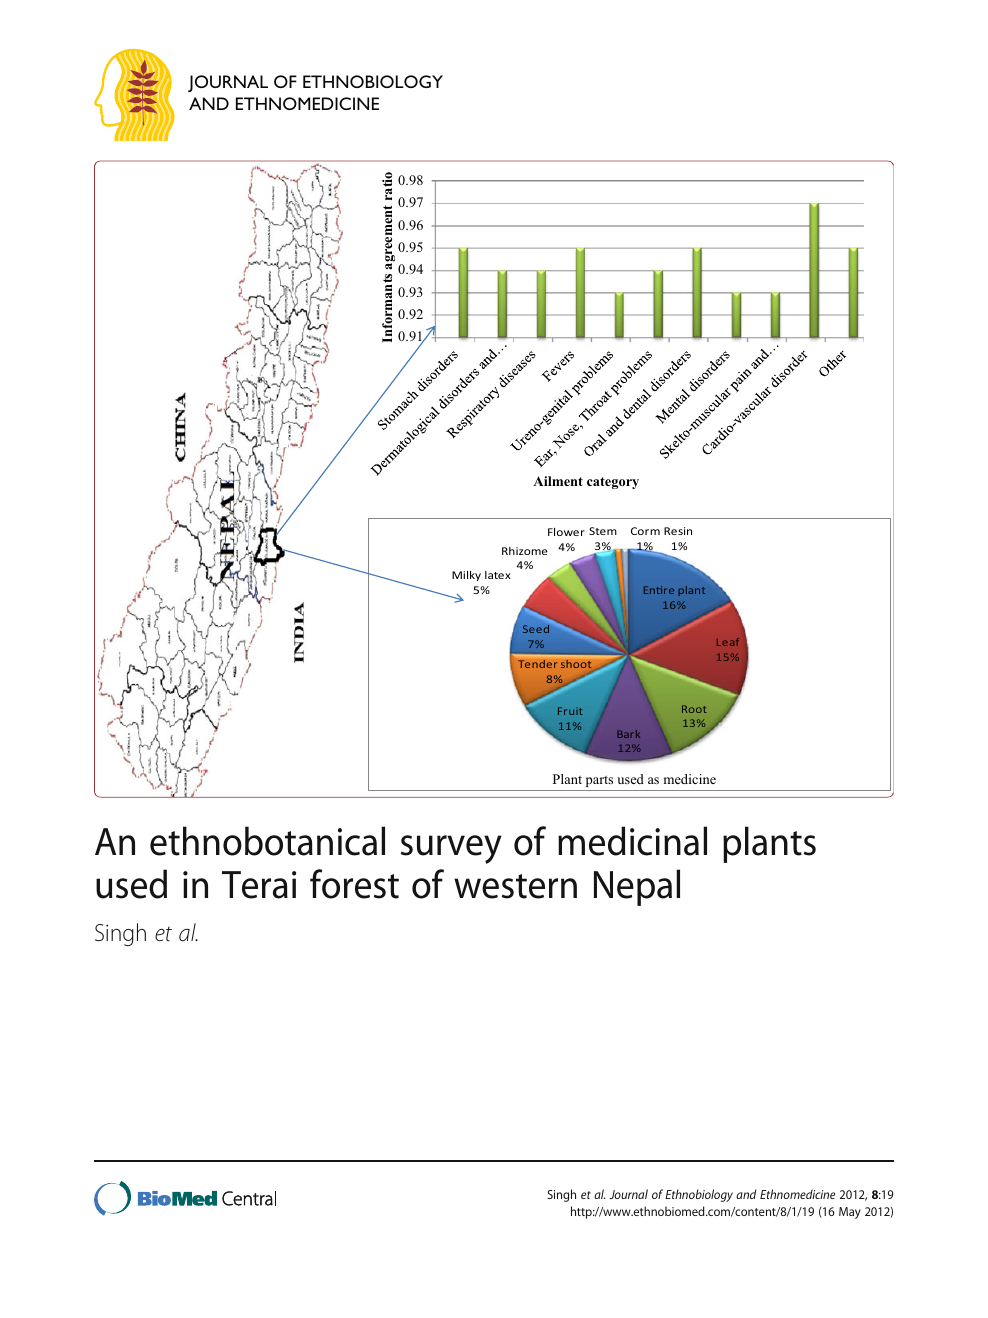 An ethnobotanical survey of medicinal plants used in Terai